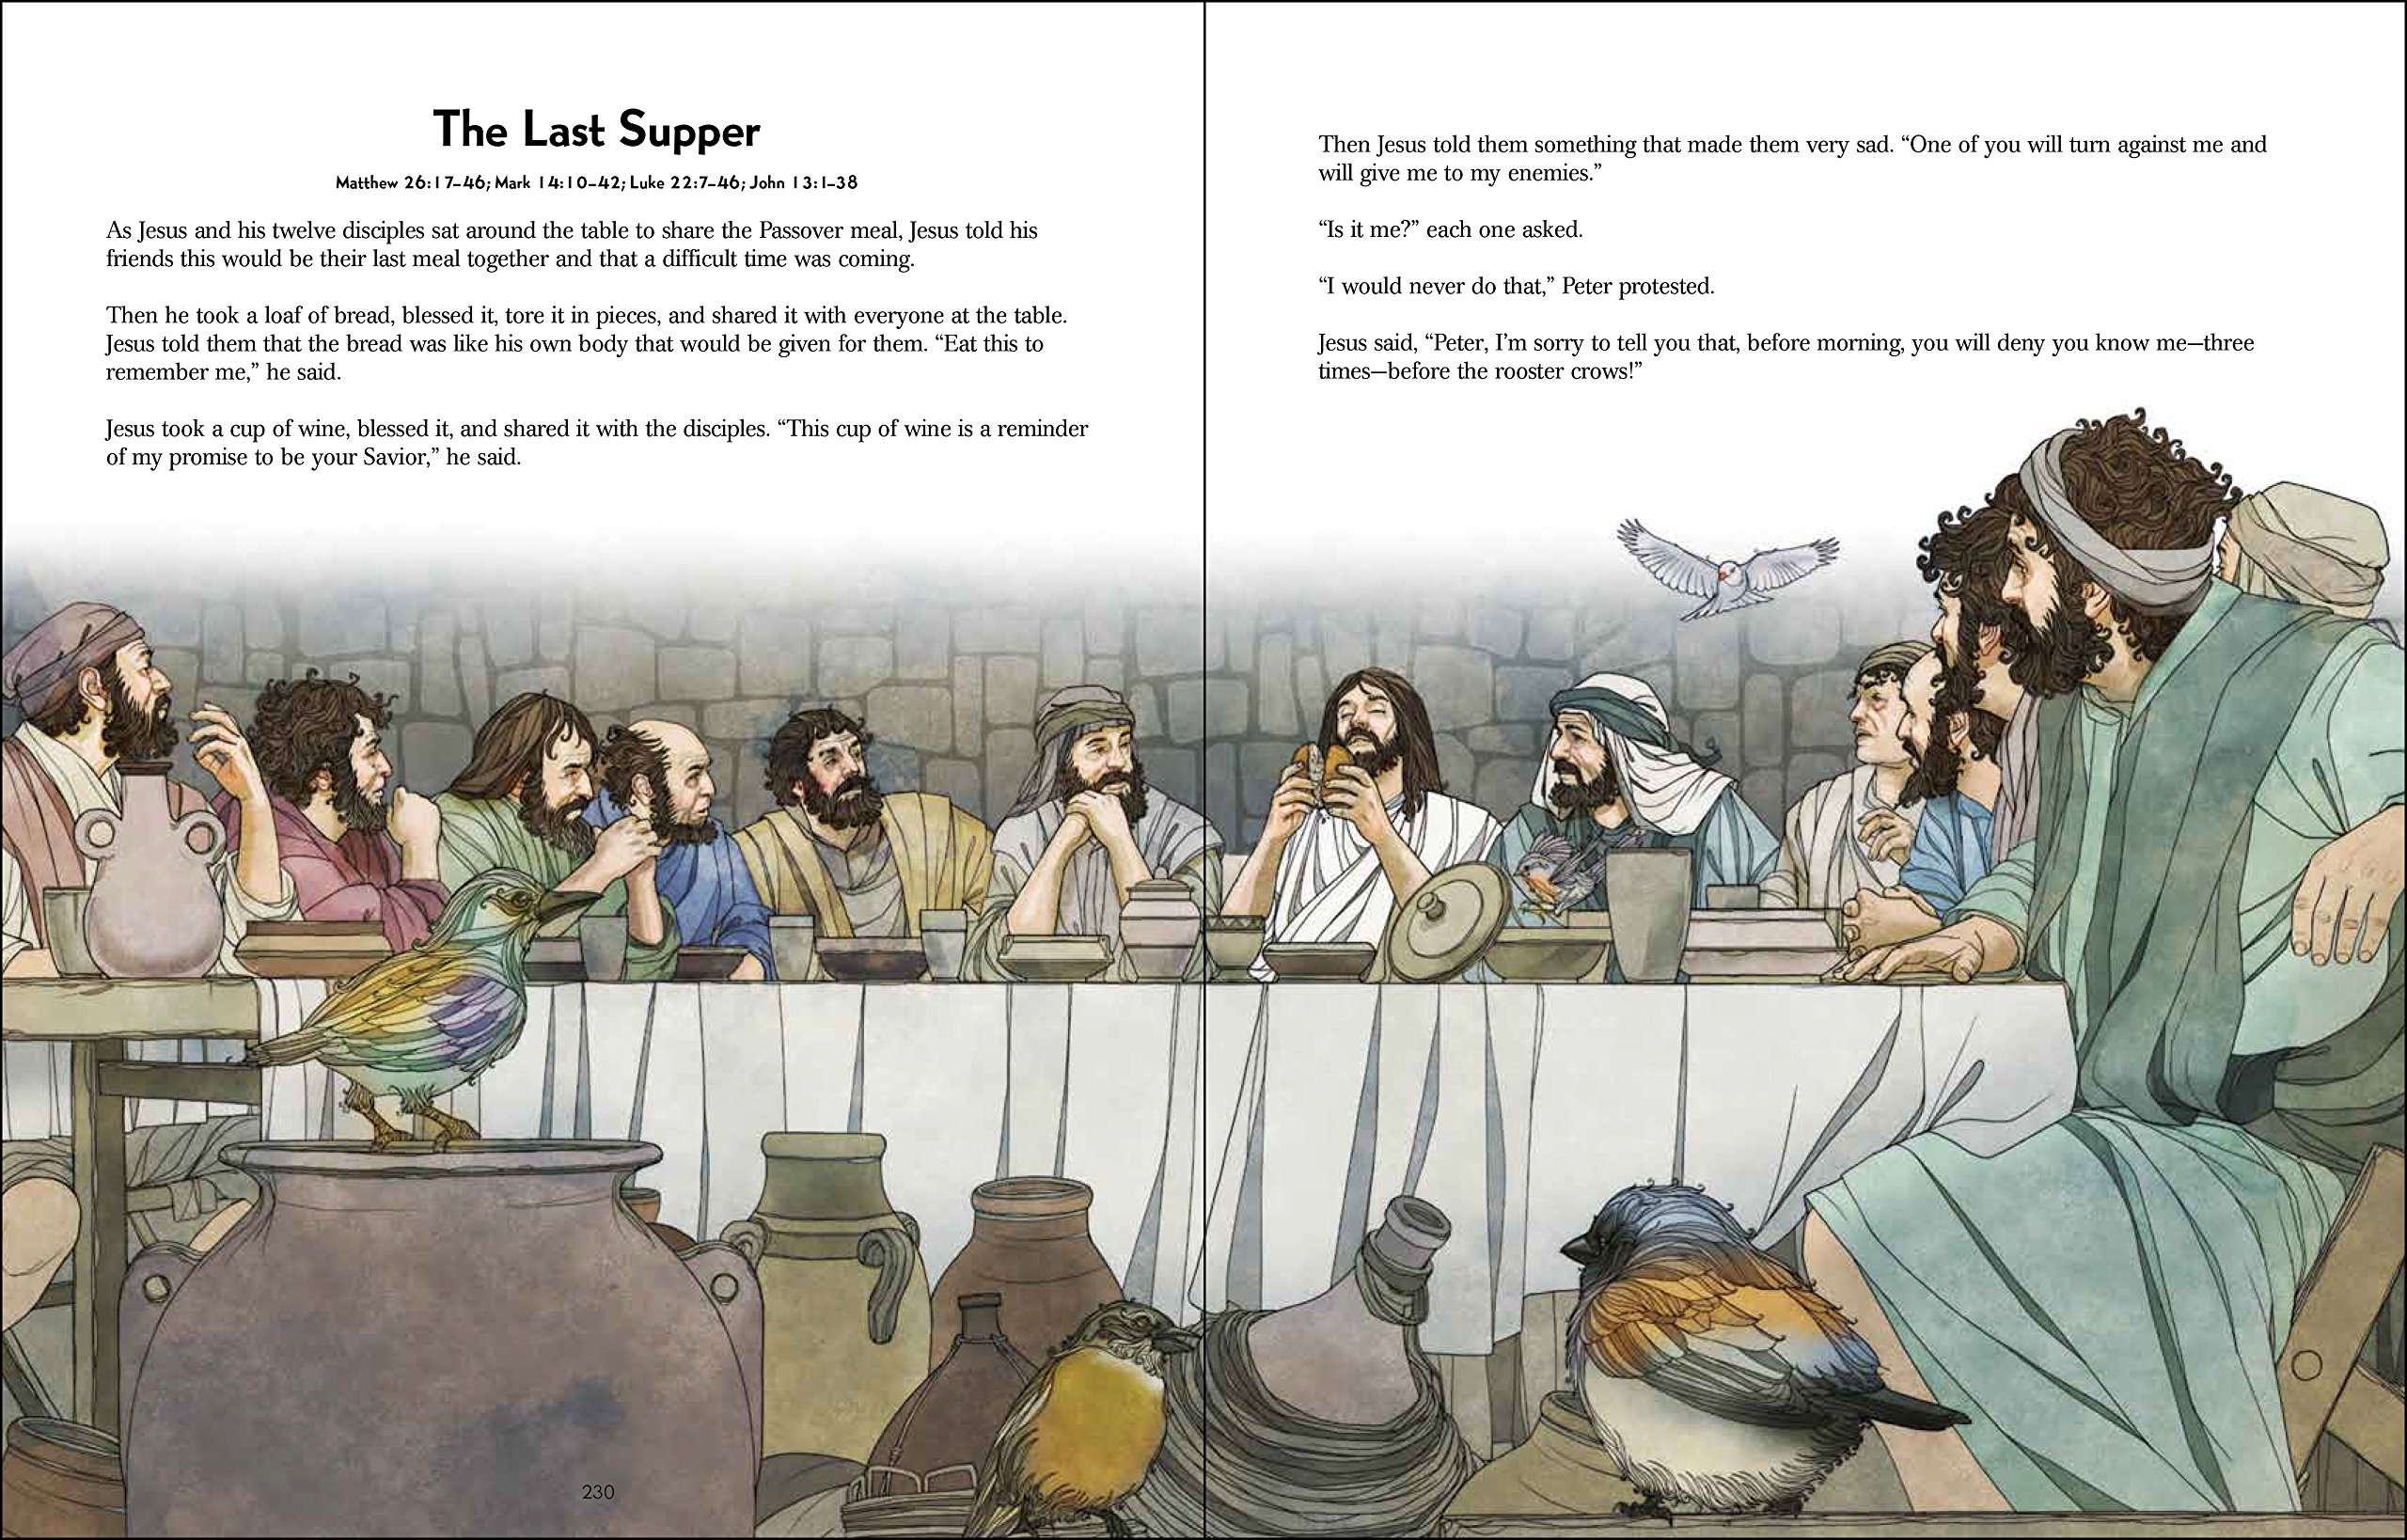 The Story For Children A Storybook Bible Max Lucado Randy Frazee Karen Davis Hill Fausto Bianchi 0025986719753 Amazon Books